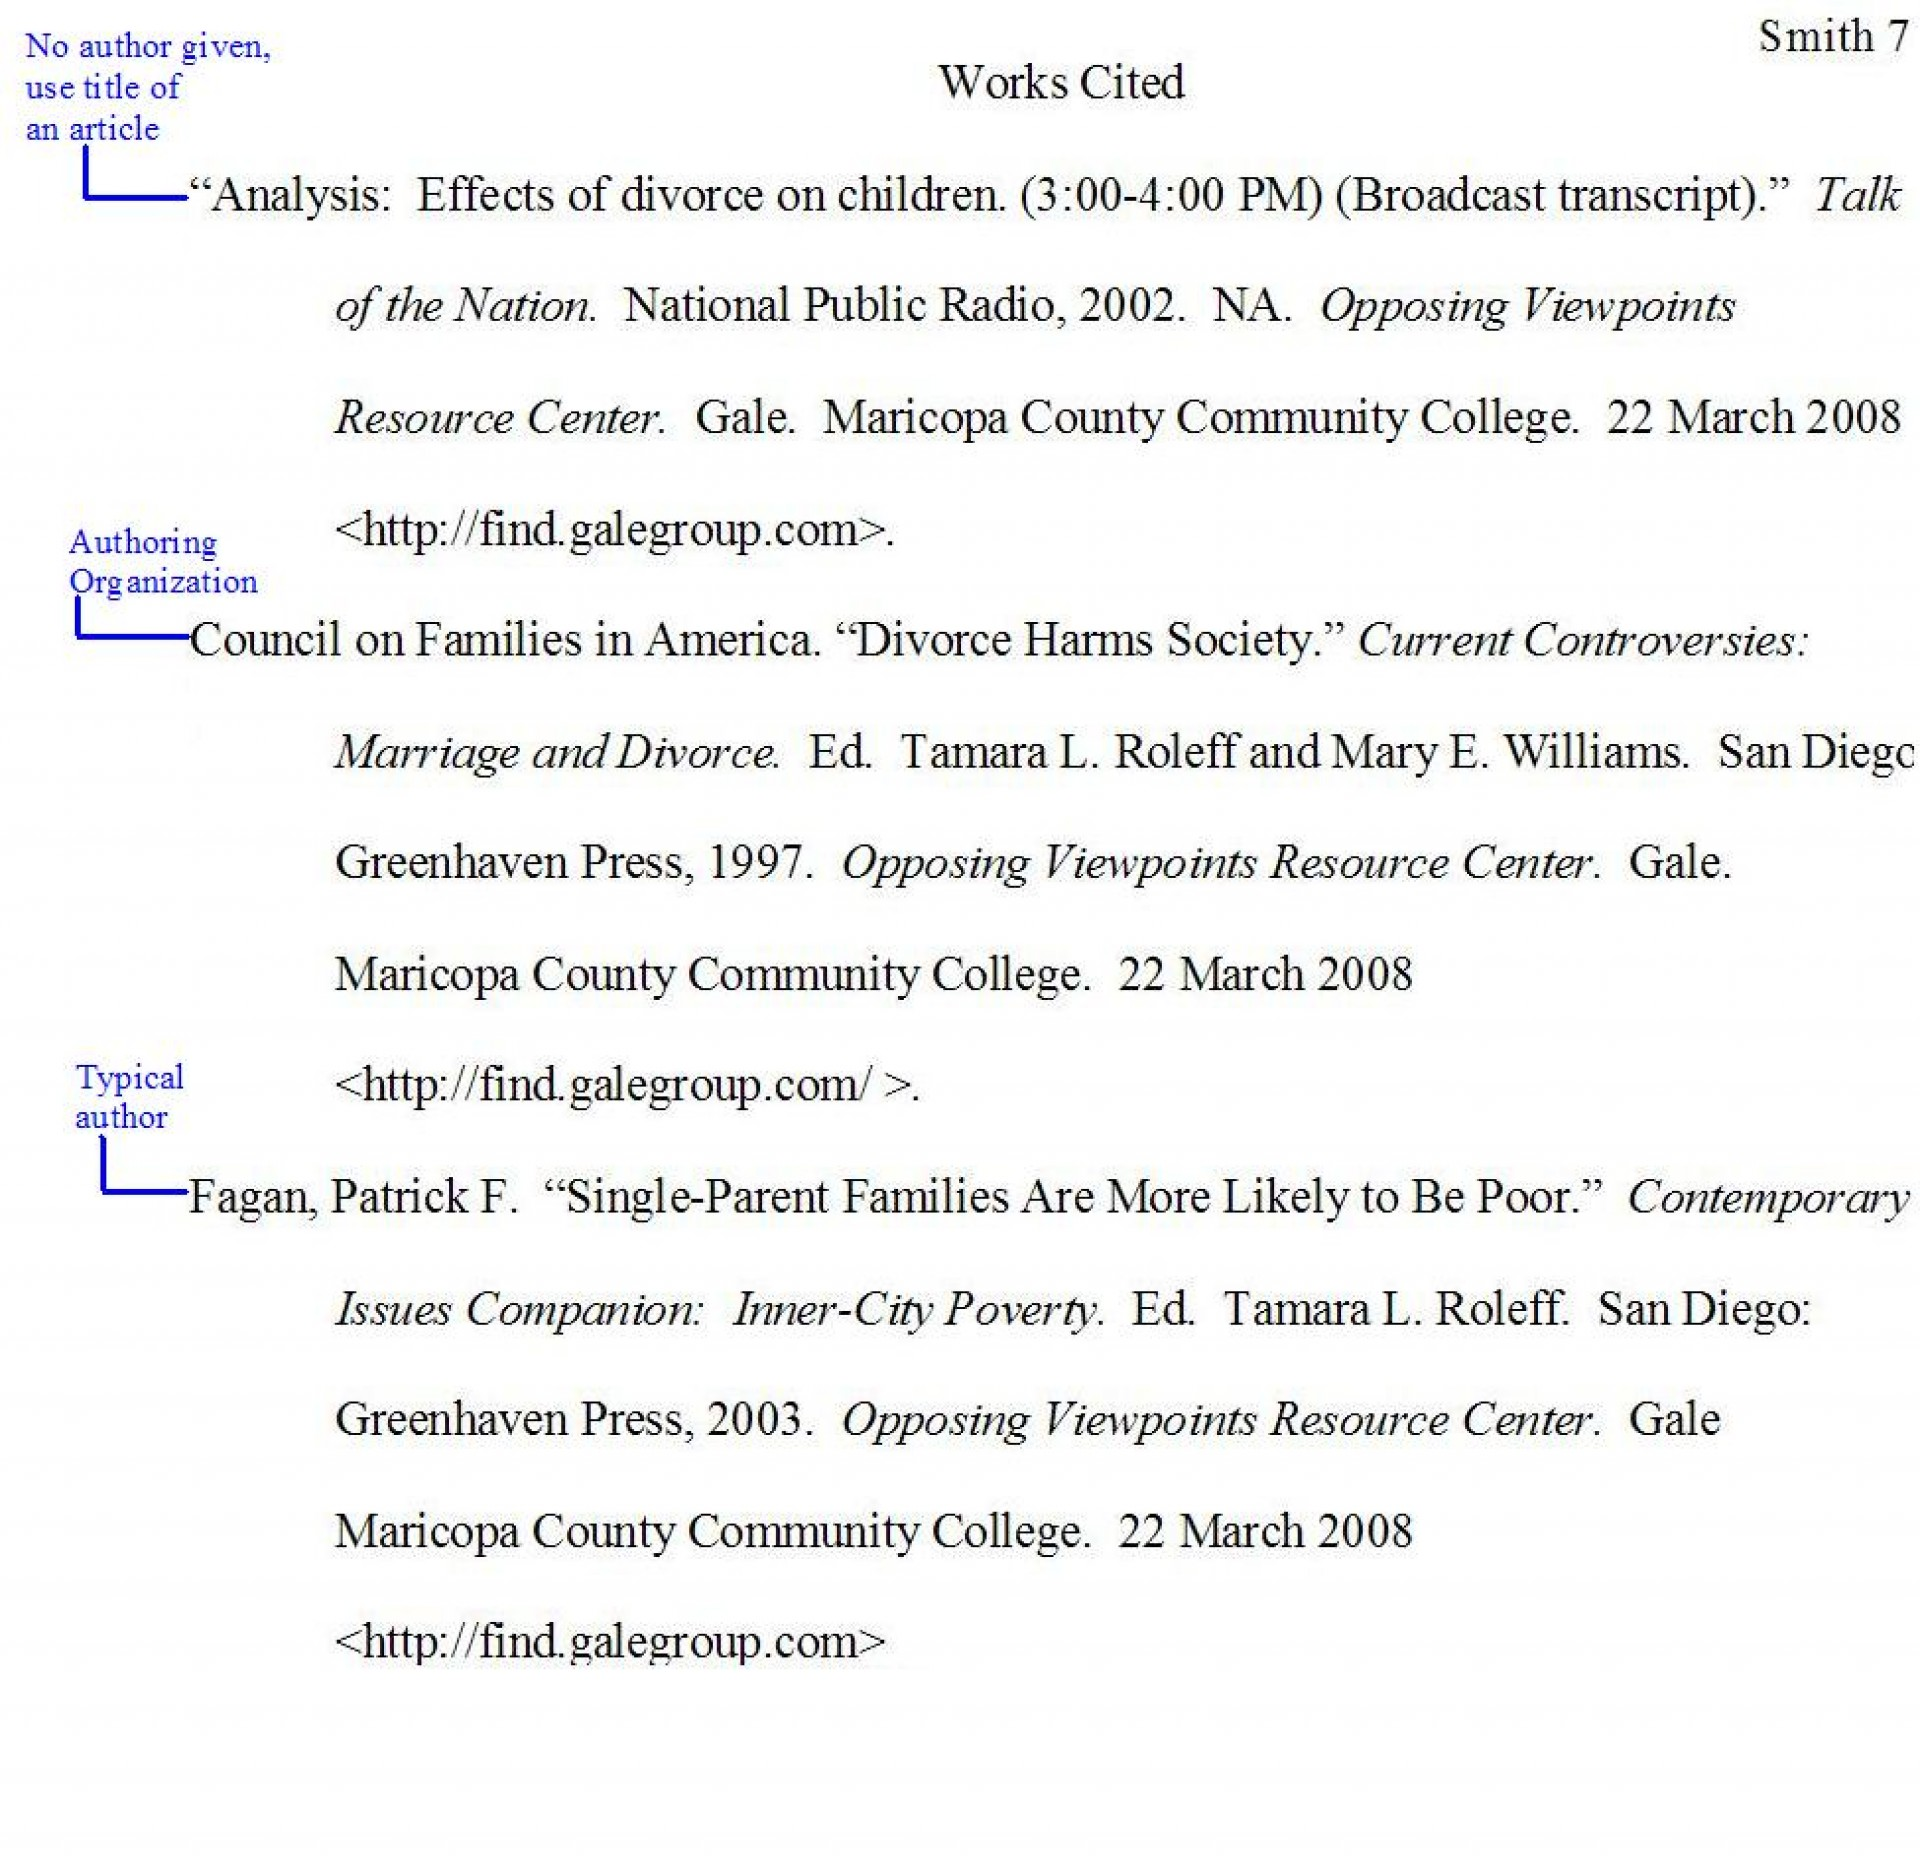 010 Samplewrkctd Jpg Research Paper Citations In Awesome A Mla Cite Style How To References Citing Website Format 1920